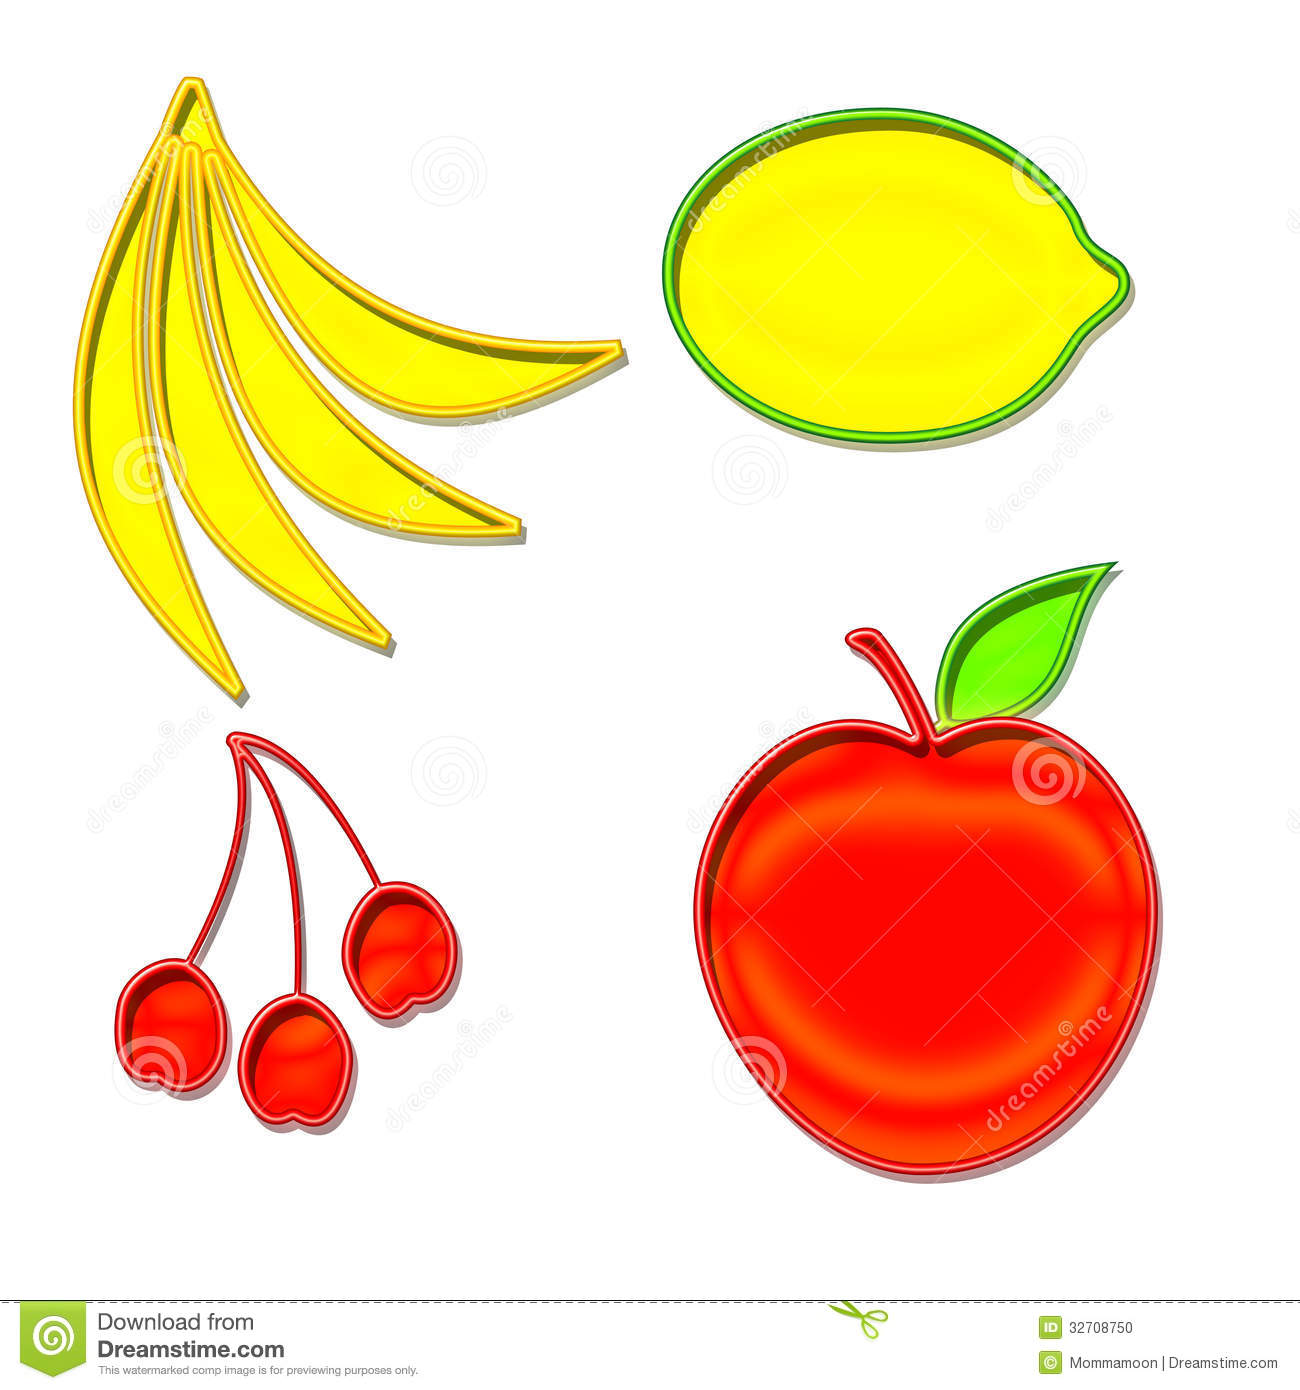 Stock Photo Set Fruit Shapes Yellow Red Green Image32708750 on banana cartoon character